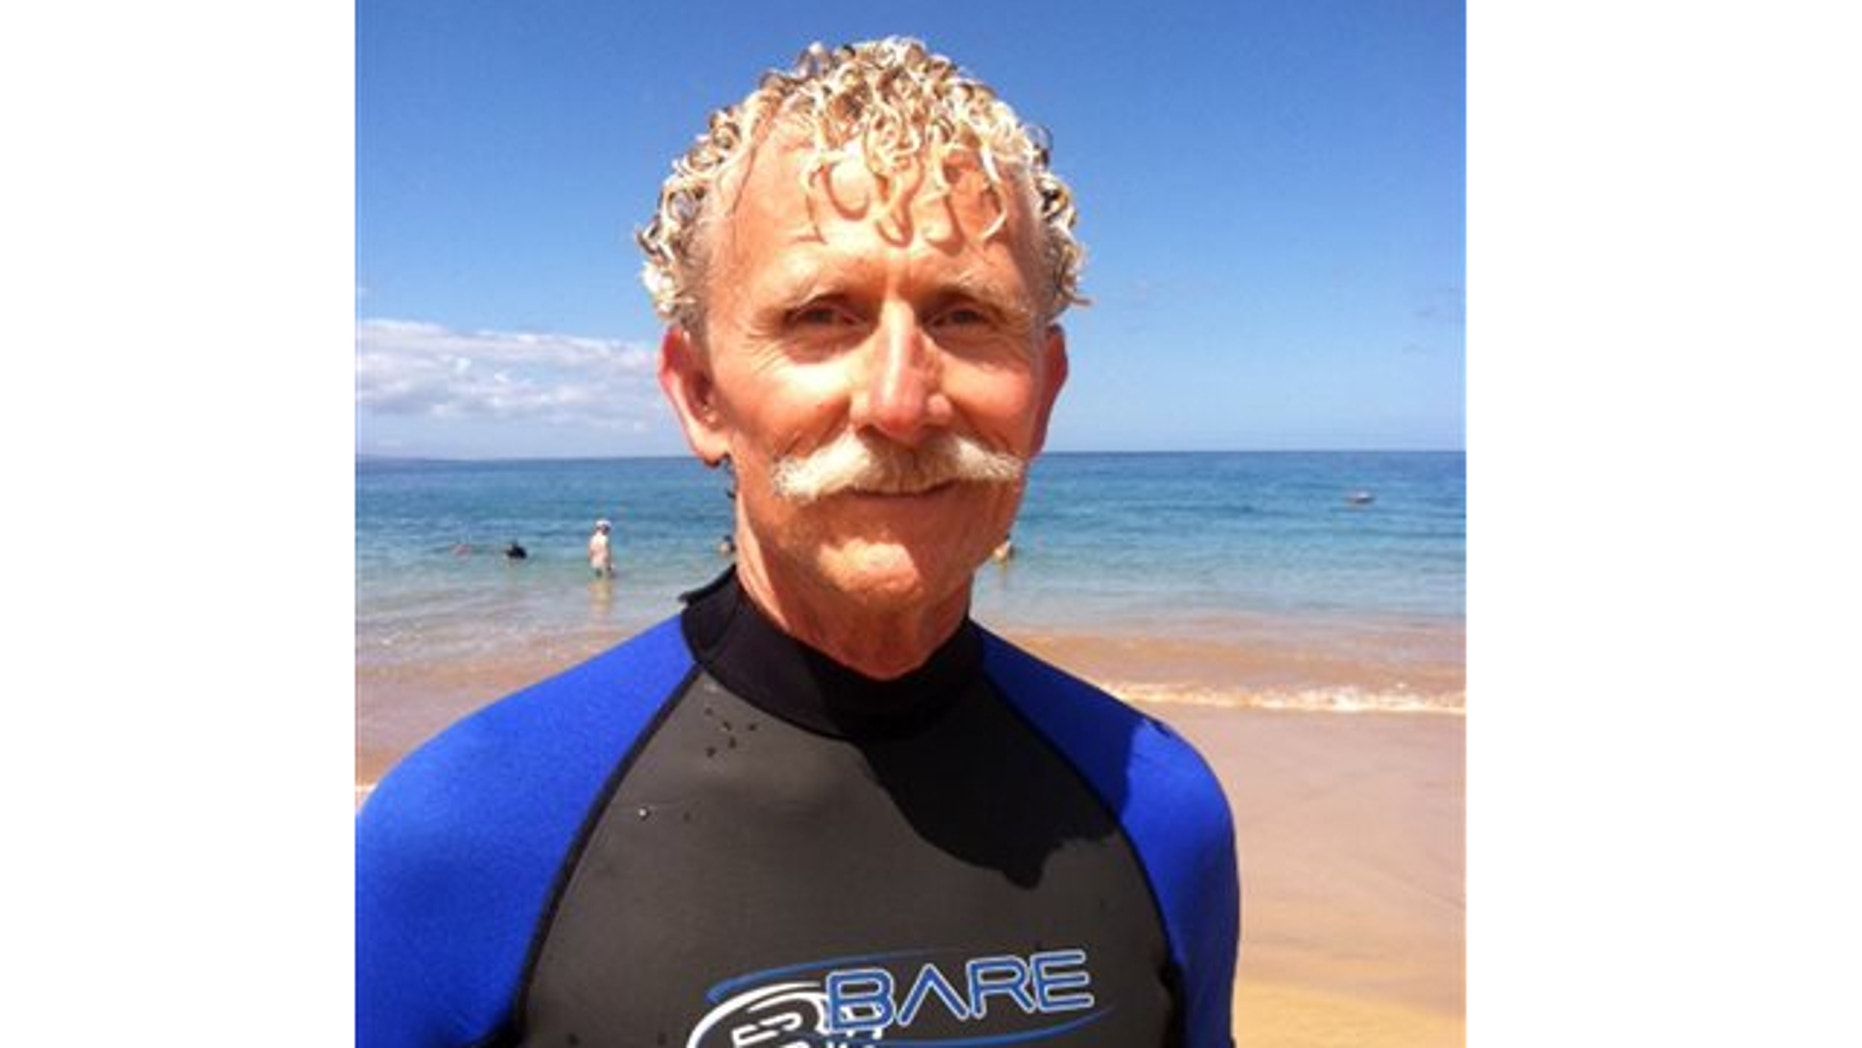 Aug. 15, 2013: Rick Moore poses at Palauea Beach in Makena on the island of Maui, Hawaii, a day after he jumped into the water to rescue a shark attack victim who lost her arm.